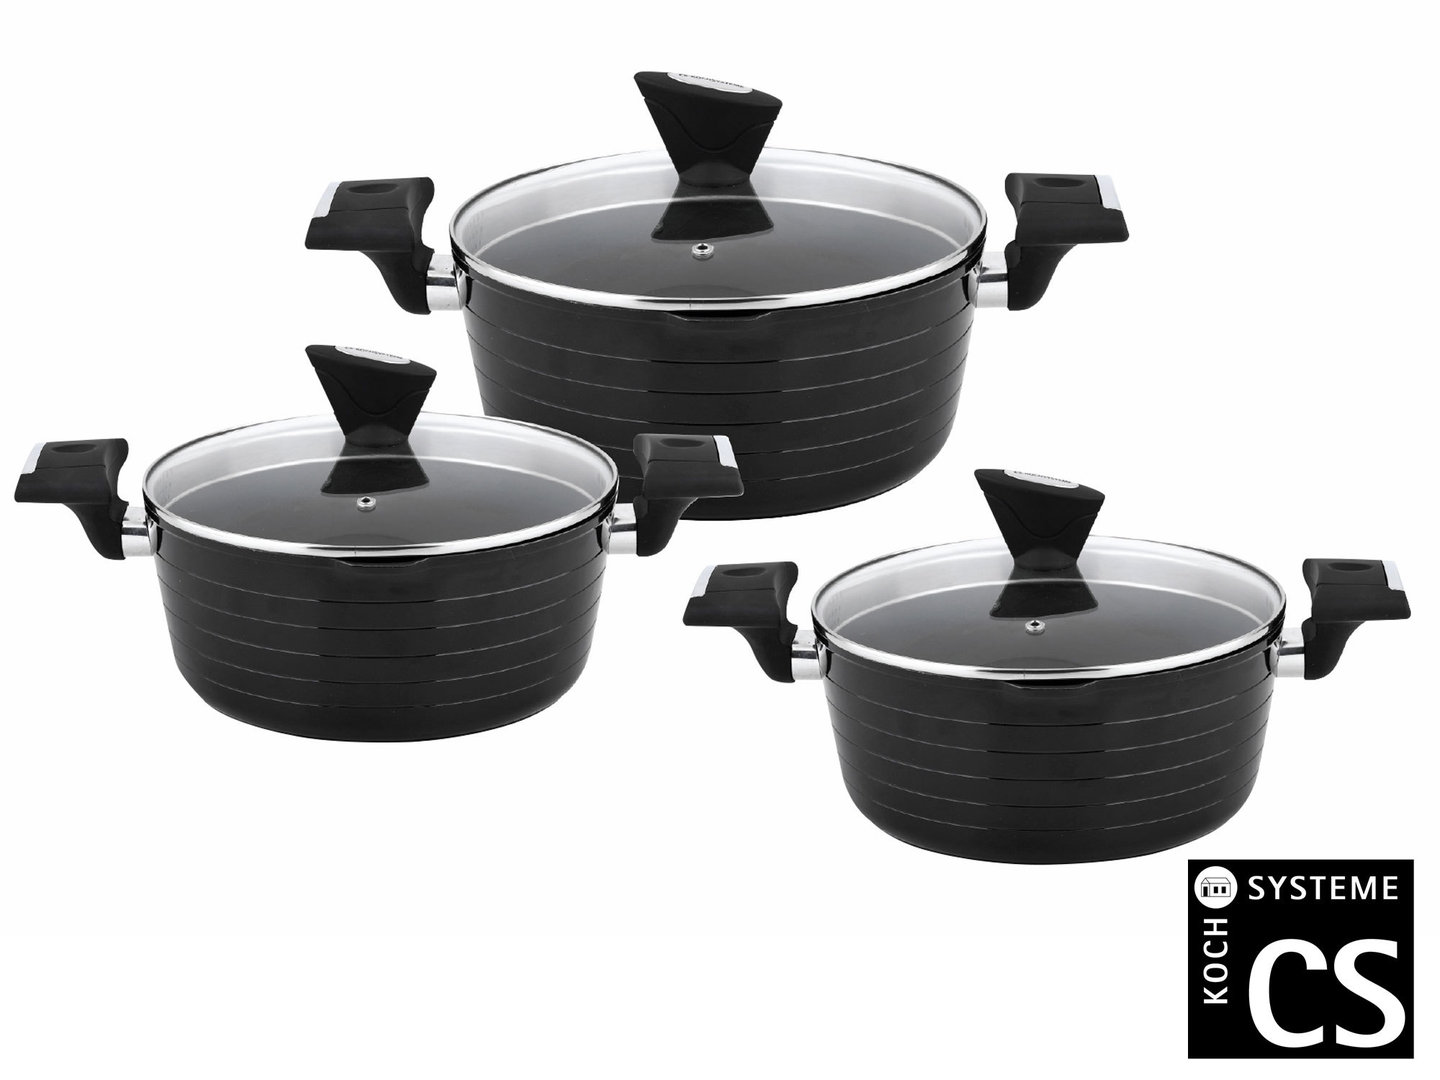 CS KOCHSYSTEME cookware set MONHEIM easy-straining casseroles 16/20/24 cm